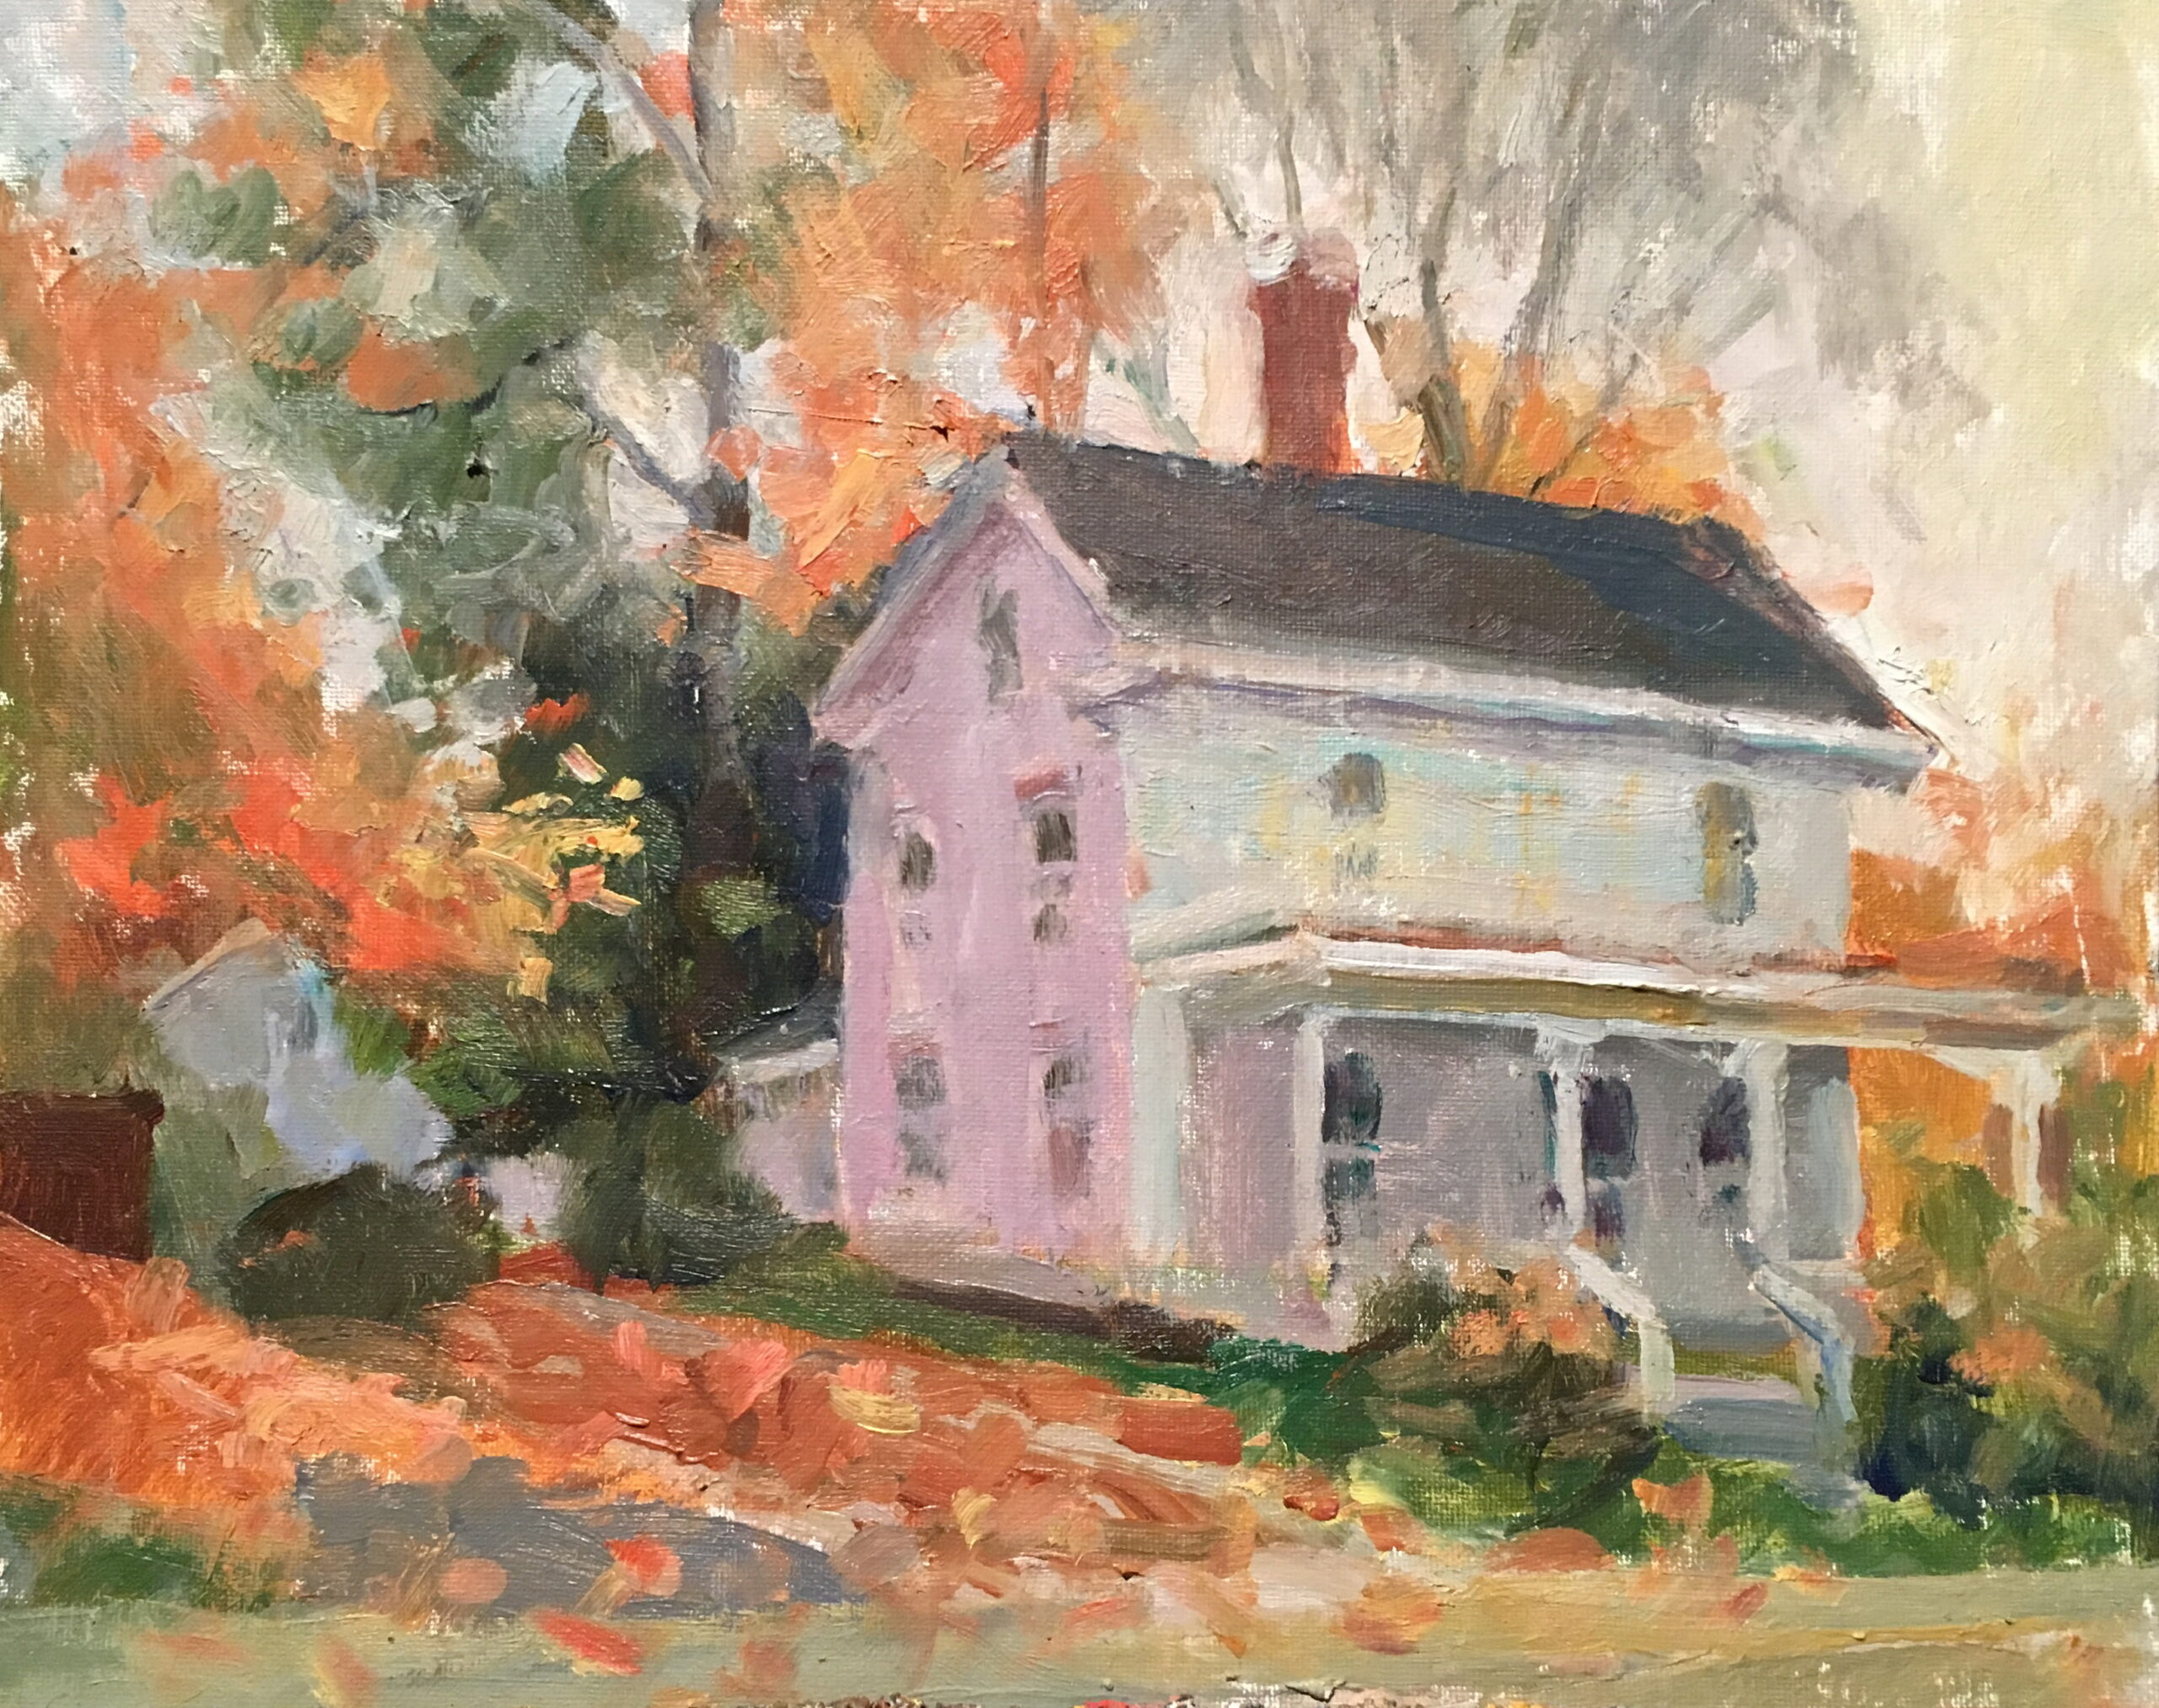 October on Main Street, Oil on Canvas on Panel, 11 x 14 Inches, by Susan Grisell, $300